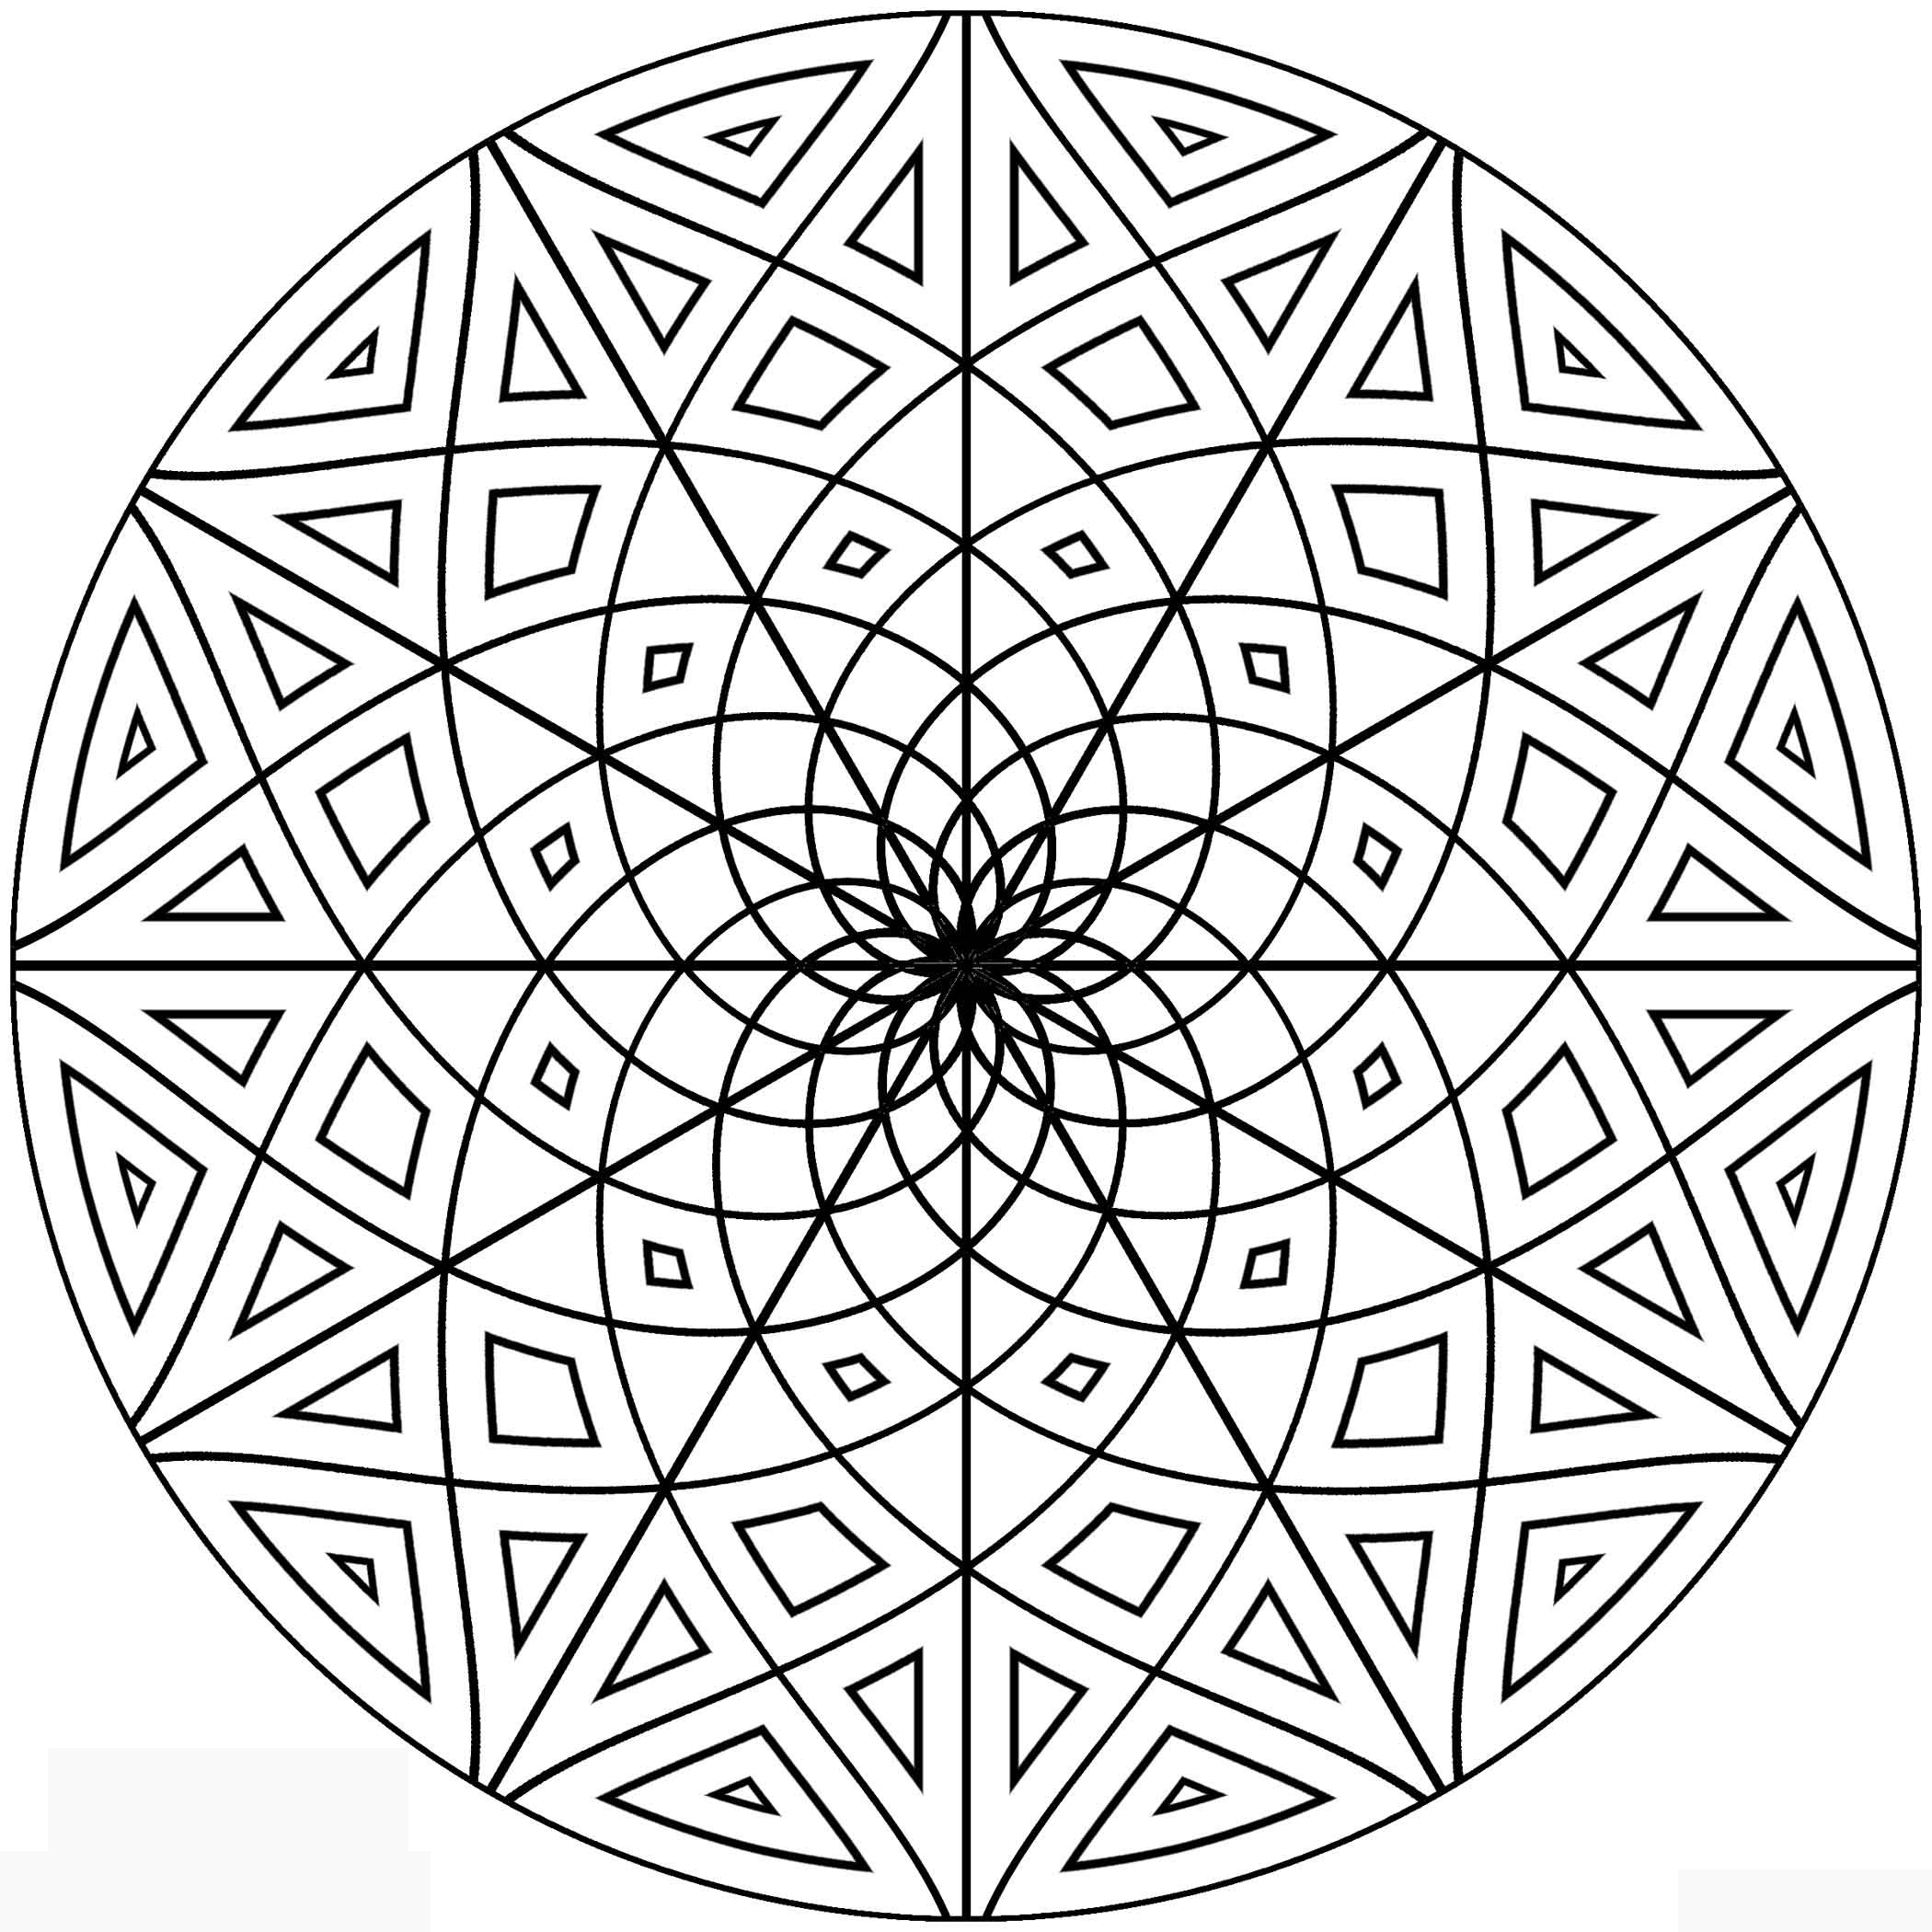 Coloring Pages To Print Designs : Free printable geometric coloring pages for adults